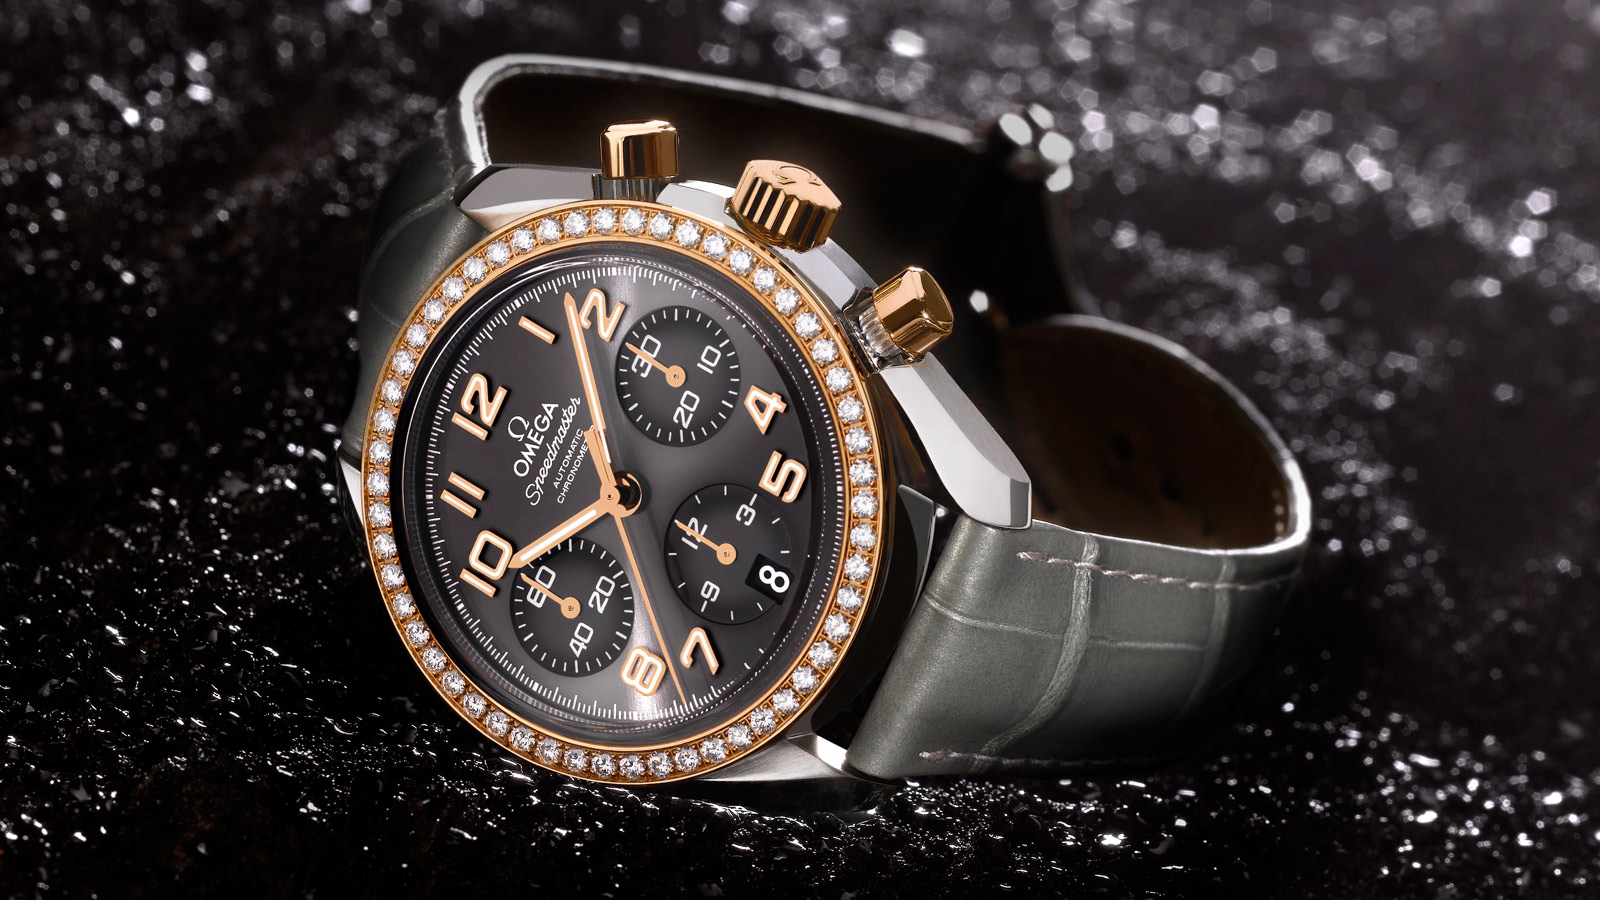 Speedmaster Ladies' Chronograph Speedmaster Chronograph 38 mm - 324.28.38.40.06.001 - Visualizzare 3